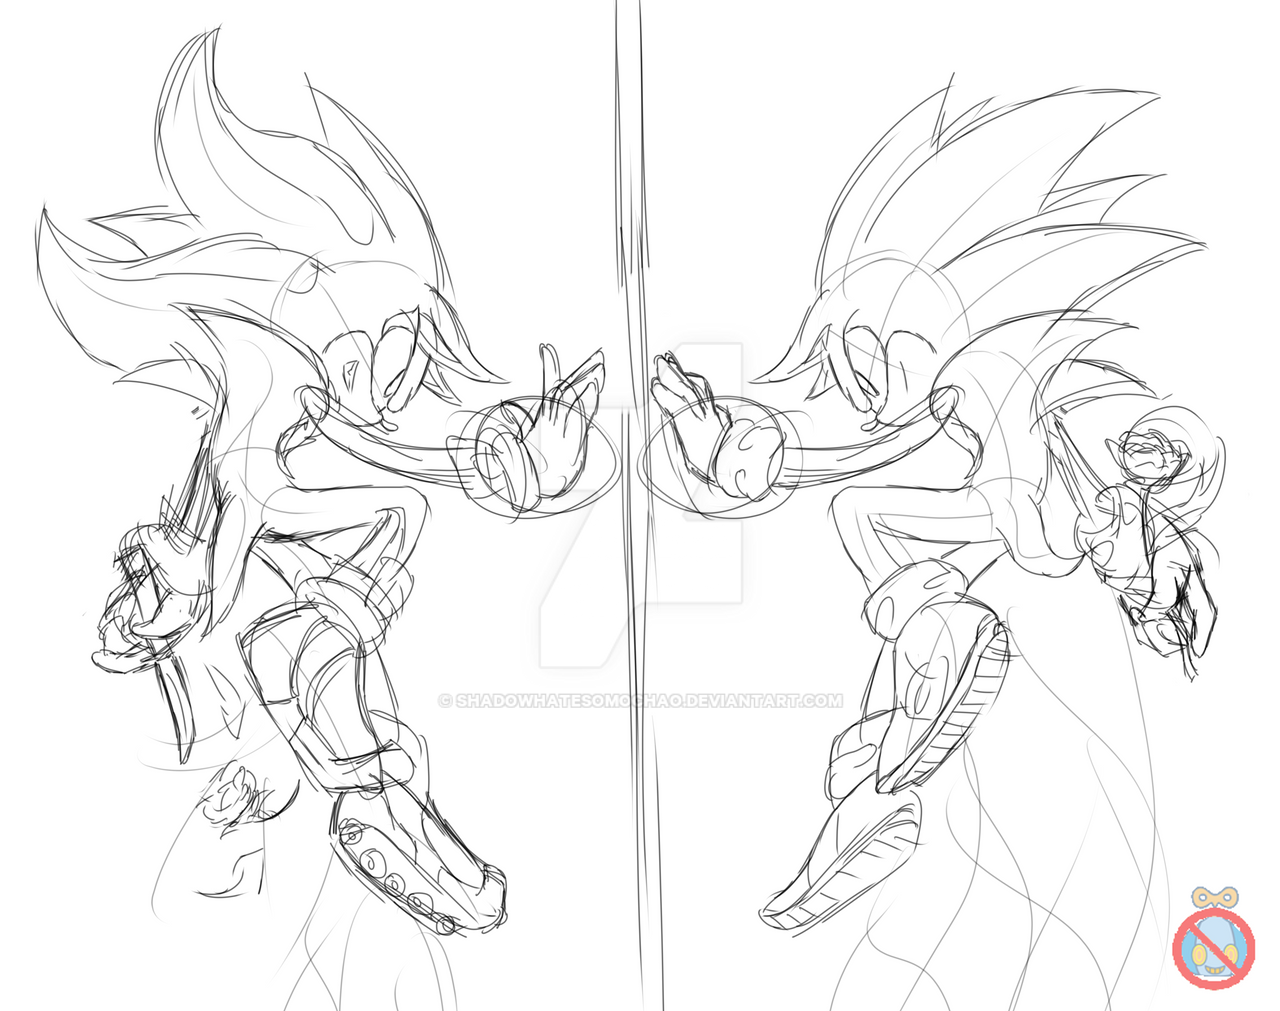 Sonic and Shadow sketch by shadowhatesomochao on DeviantArt